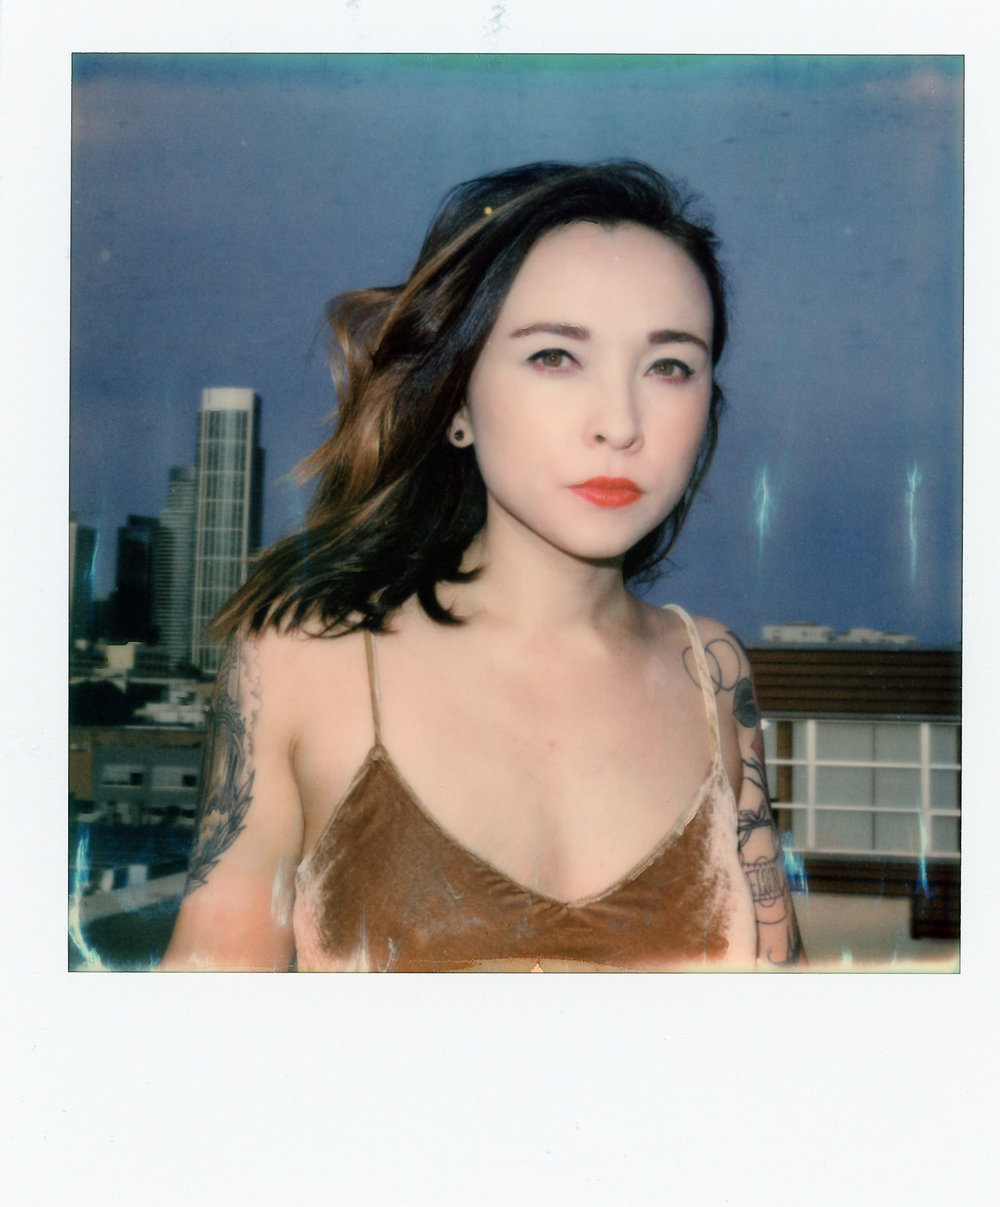 tiffany_polaroid-1.jpg